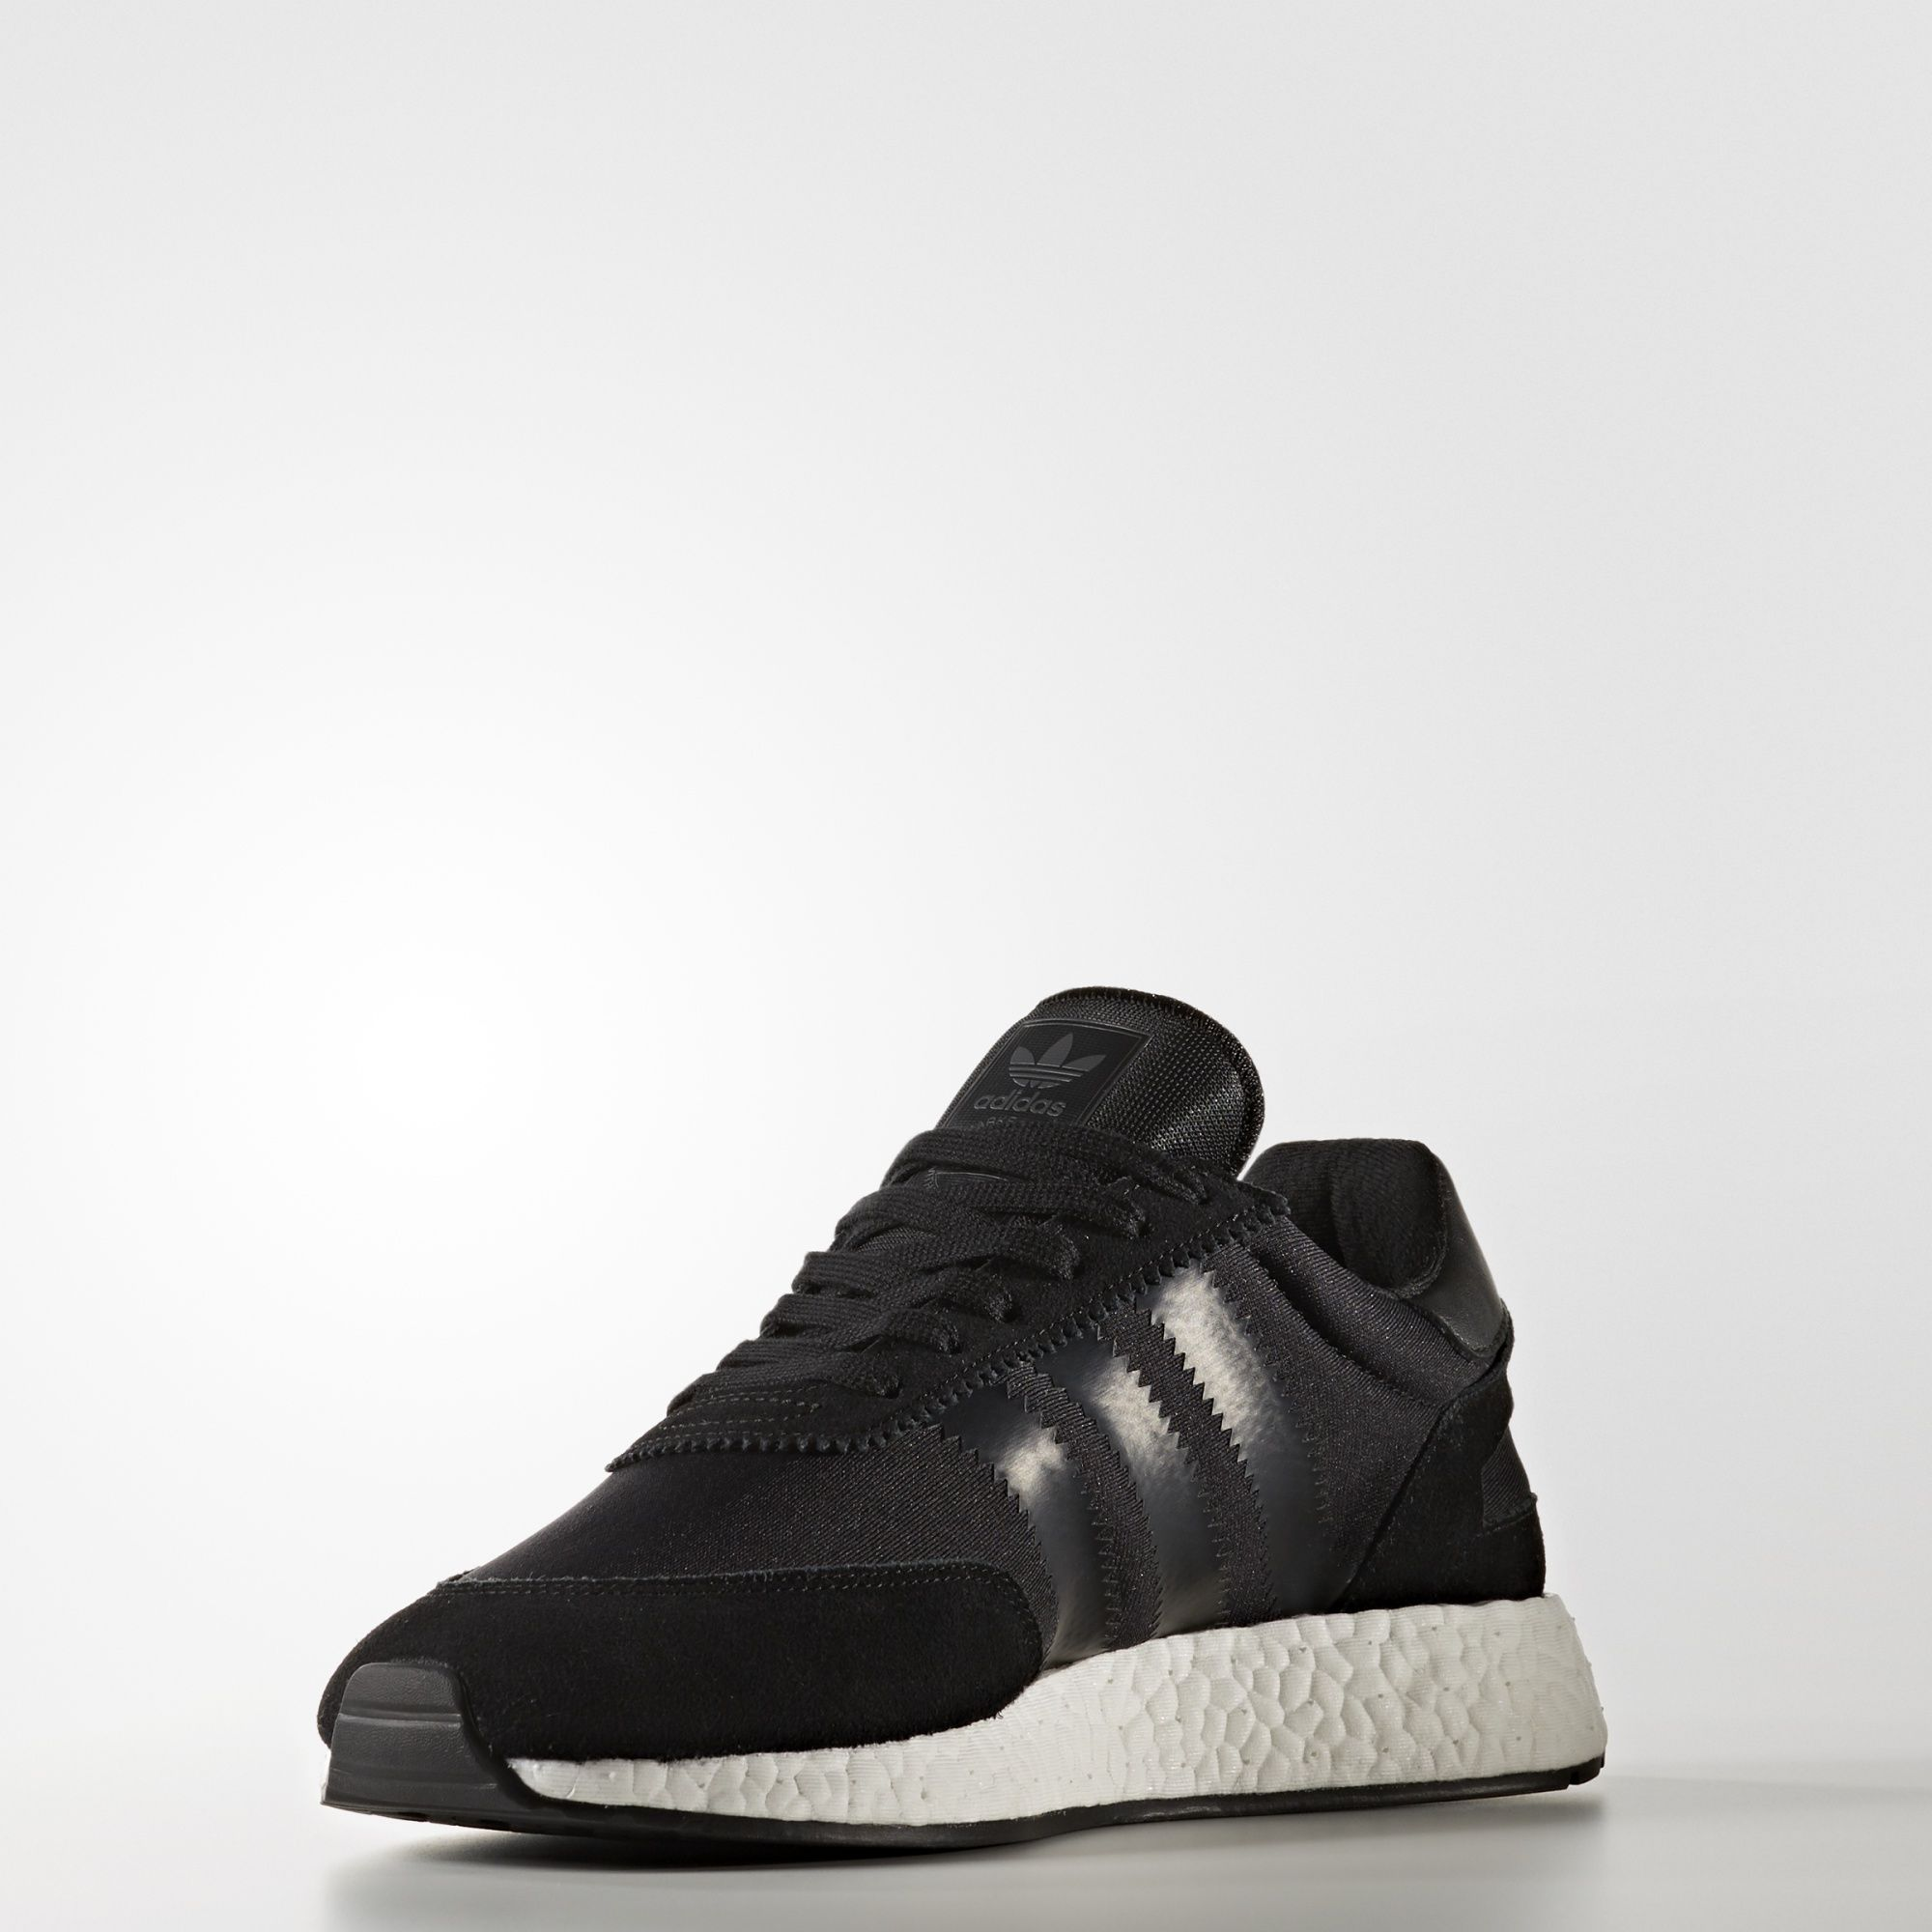 adidas Iniki Runner Black BB2100 3